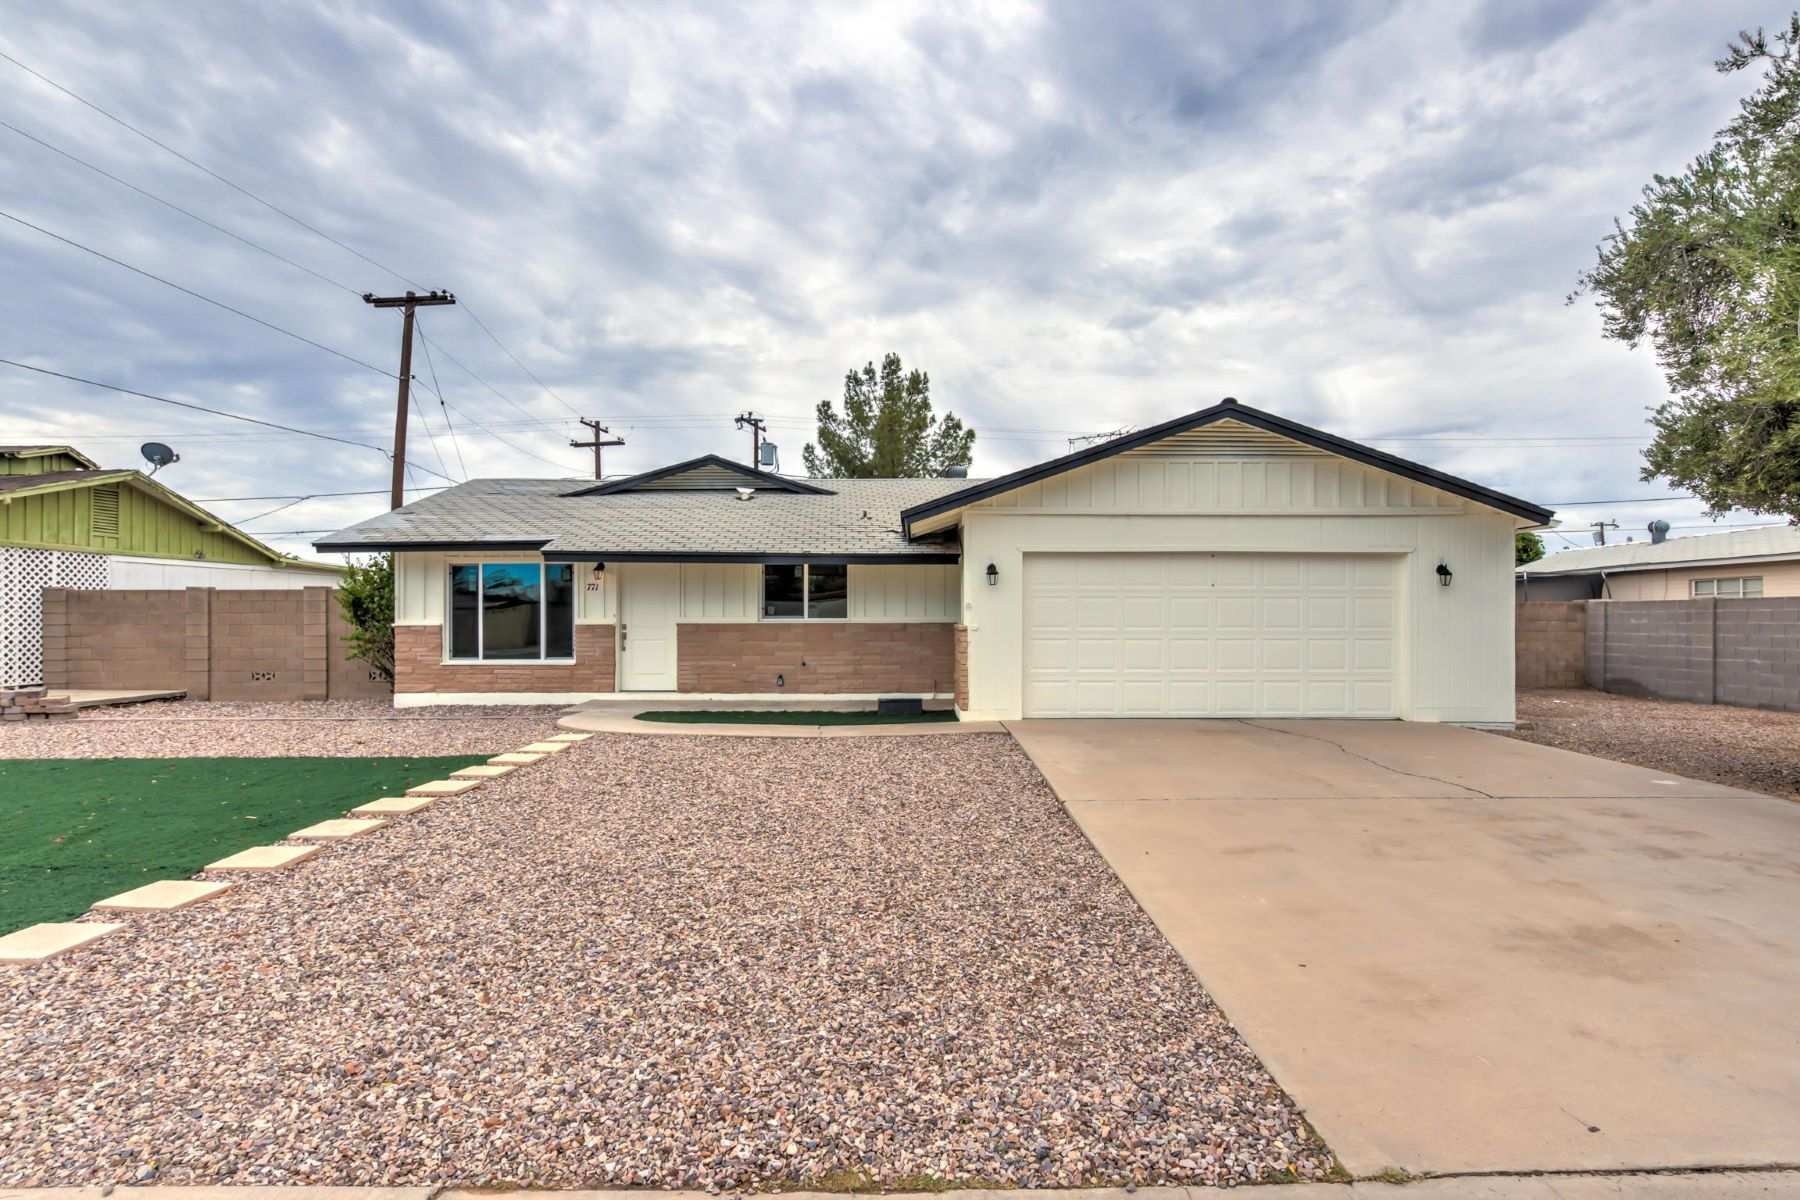 Single Family Home for Sale at Beautiful remodel with a pool in Chandler 771 W Ivanhoe St Chandler, Arizona 85225 United States